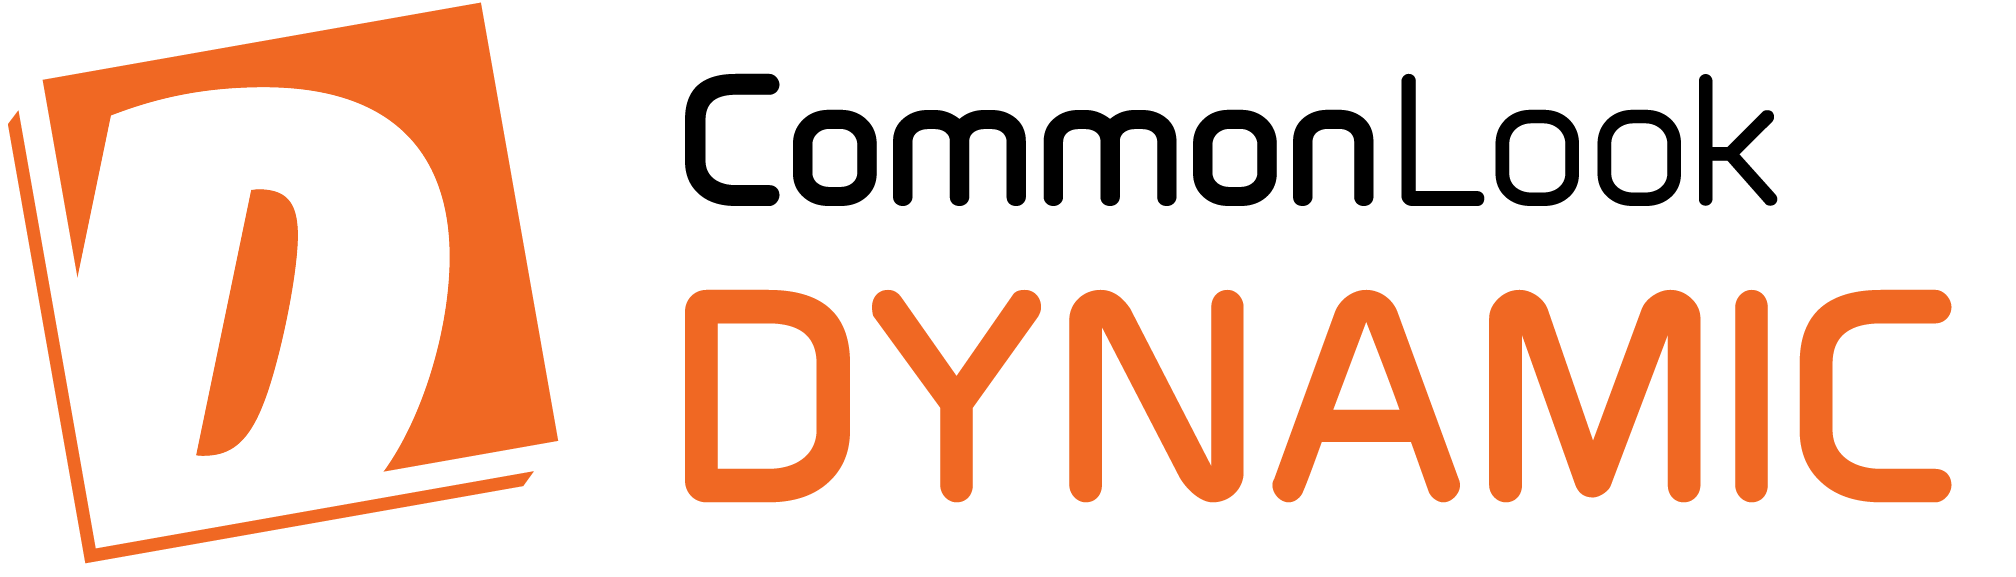 commonlook-dynamic-logo